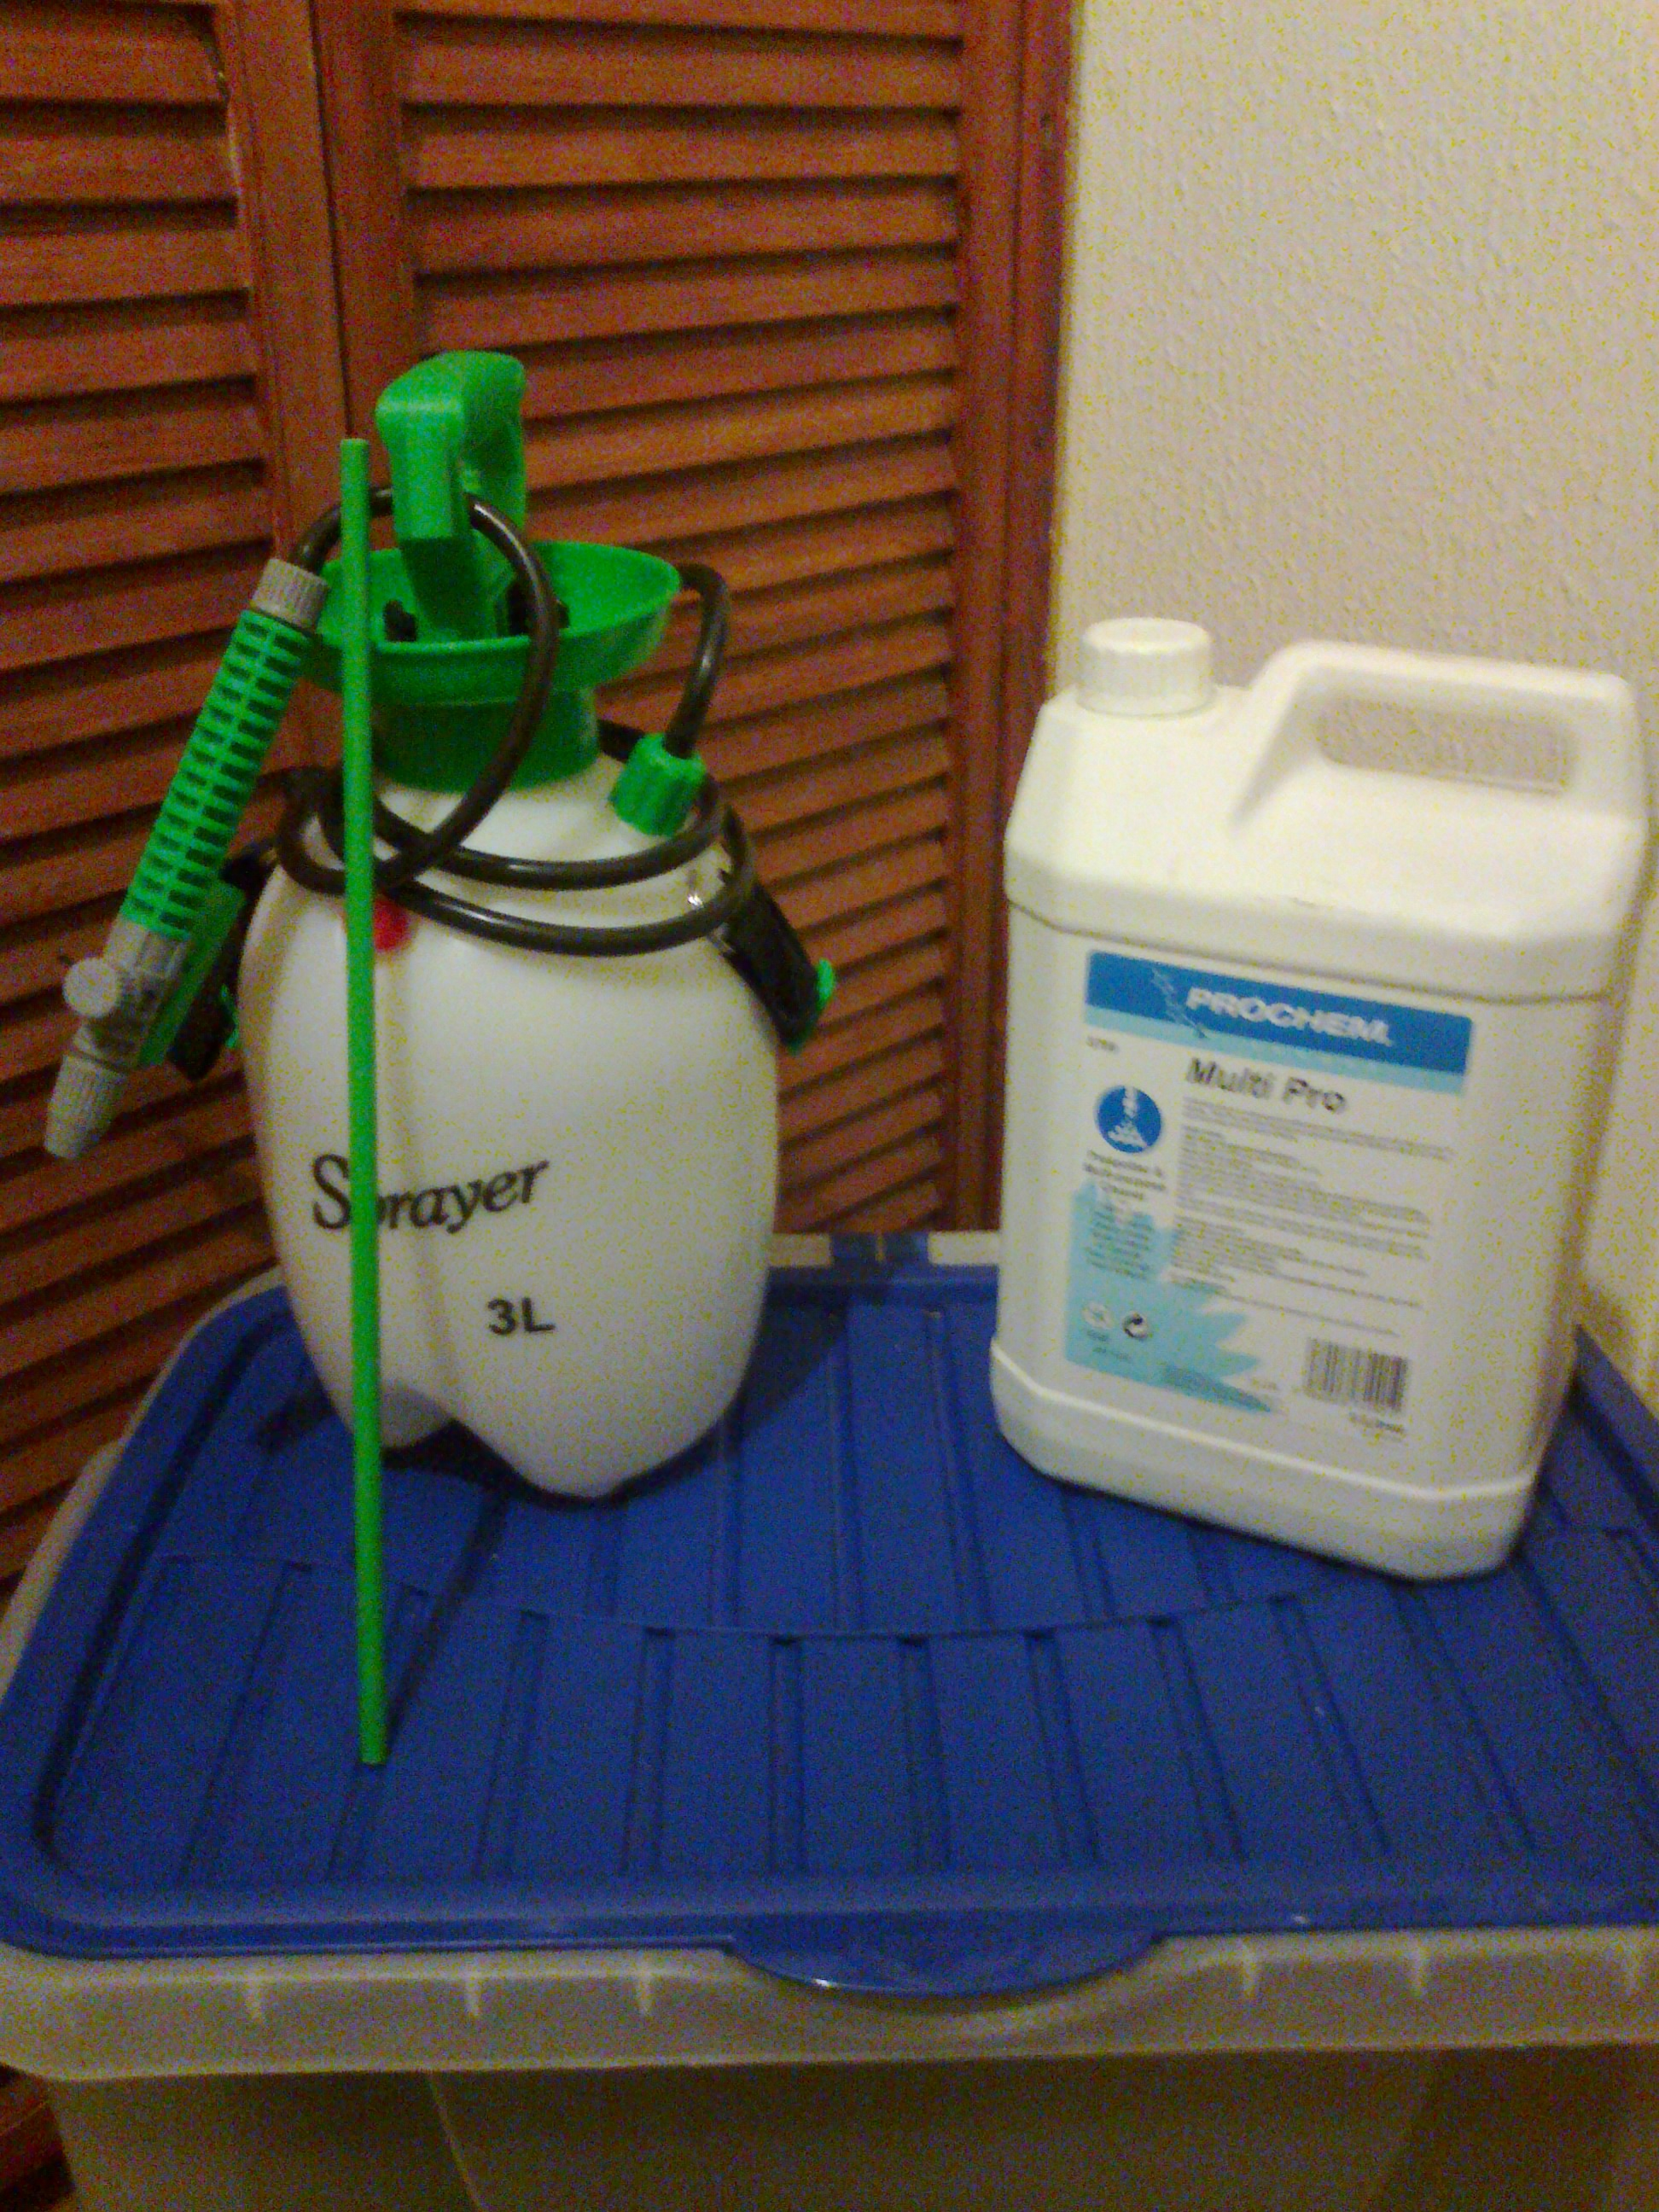 You will need a pump up pressure sprayer and a pre-spray solution.